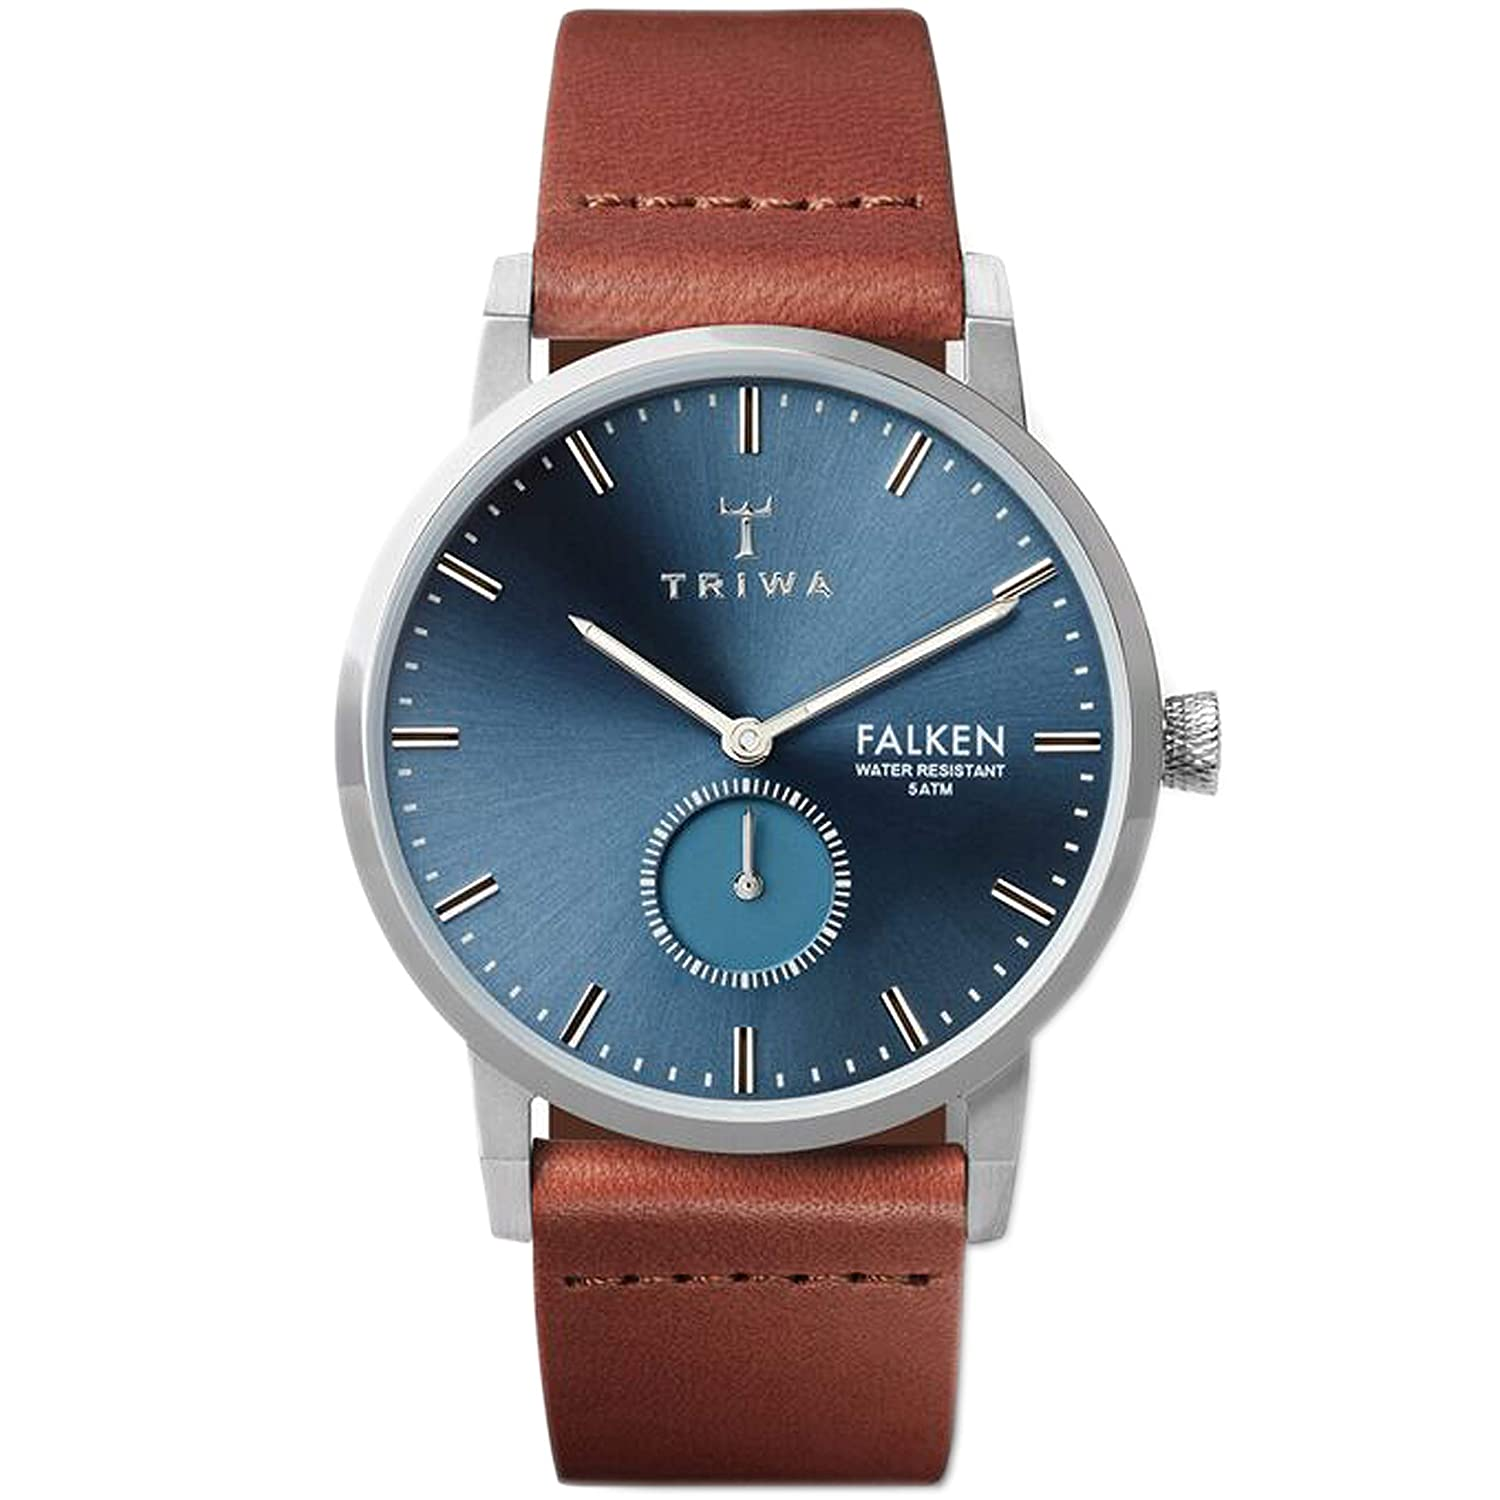 TRIWA Falken Men's Minimalist Dress Watch – Luxury Wrist Watches for Men, 38mm